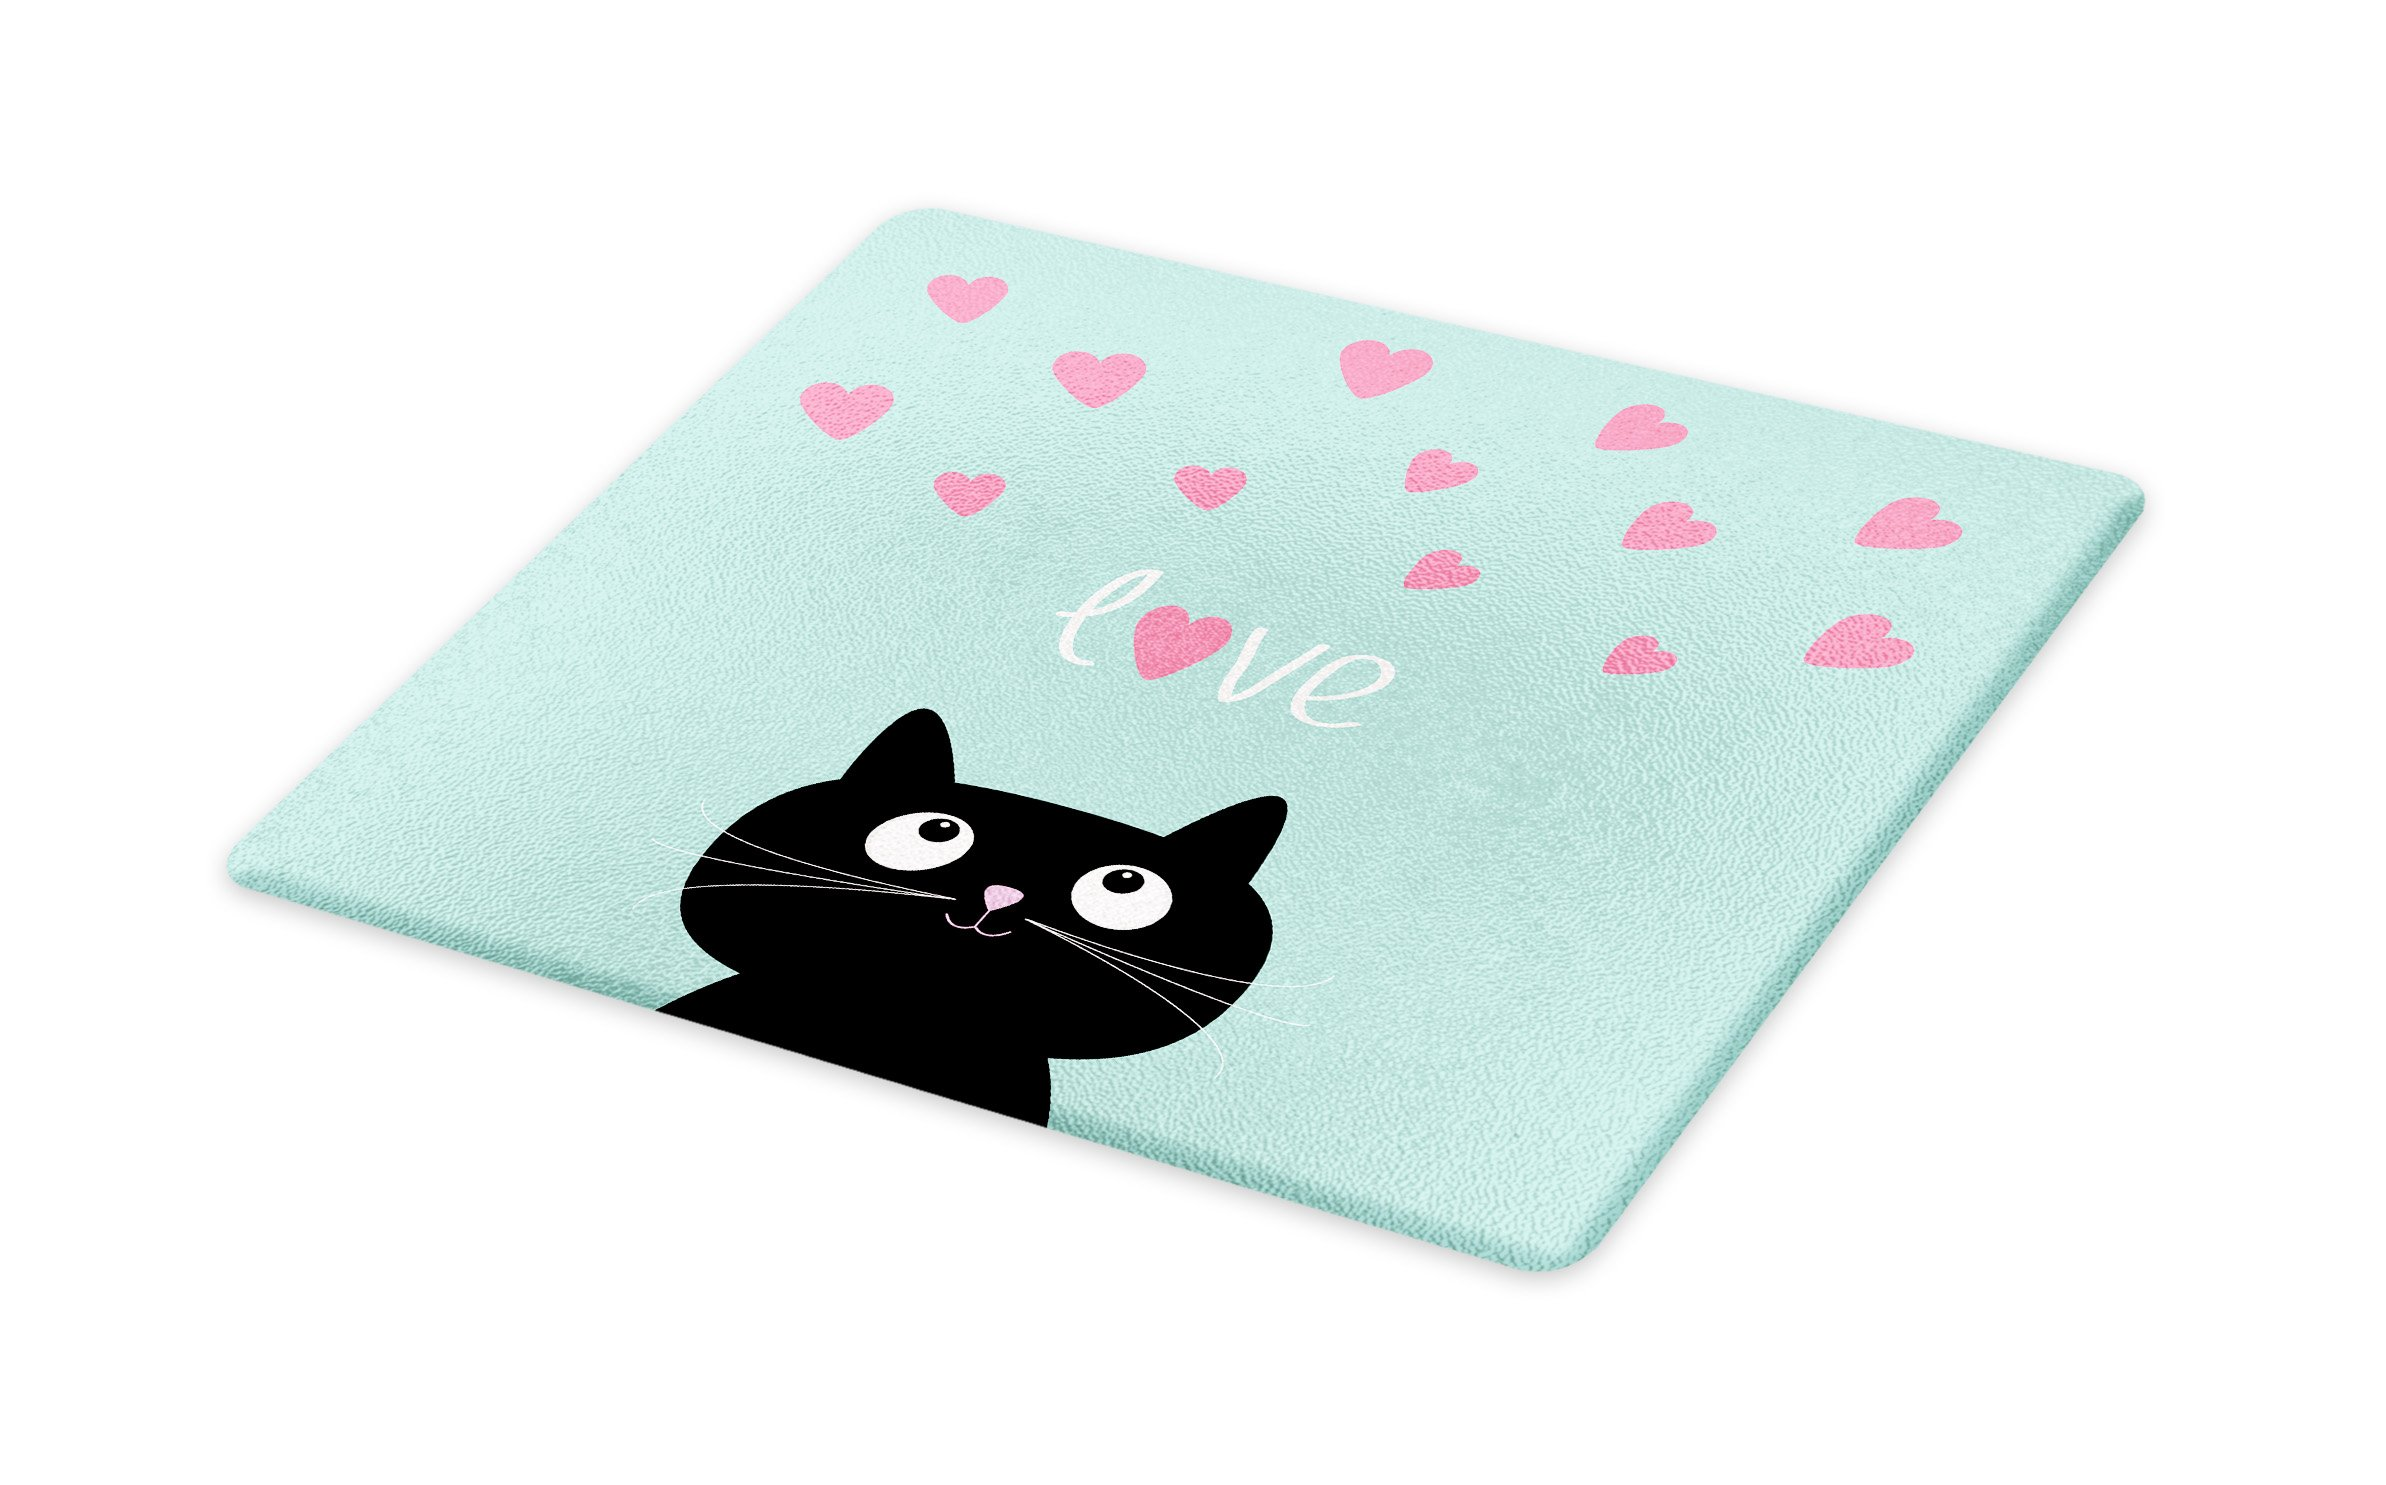 Lunarable Valentines Cutting Board, Kitty Heart Figures Cat Lovely Companions Kids Children Illustration, Decorative Tempered Glass Cutting and Serving Board, Large Size, Seafoam Pink Black